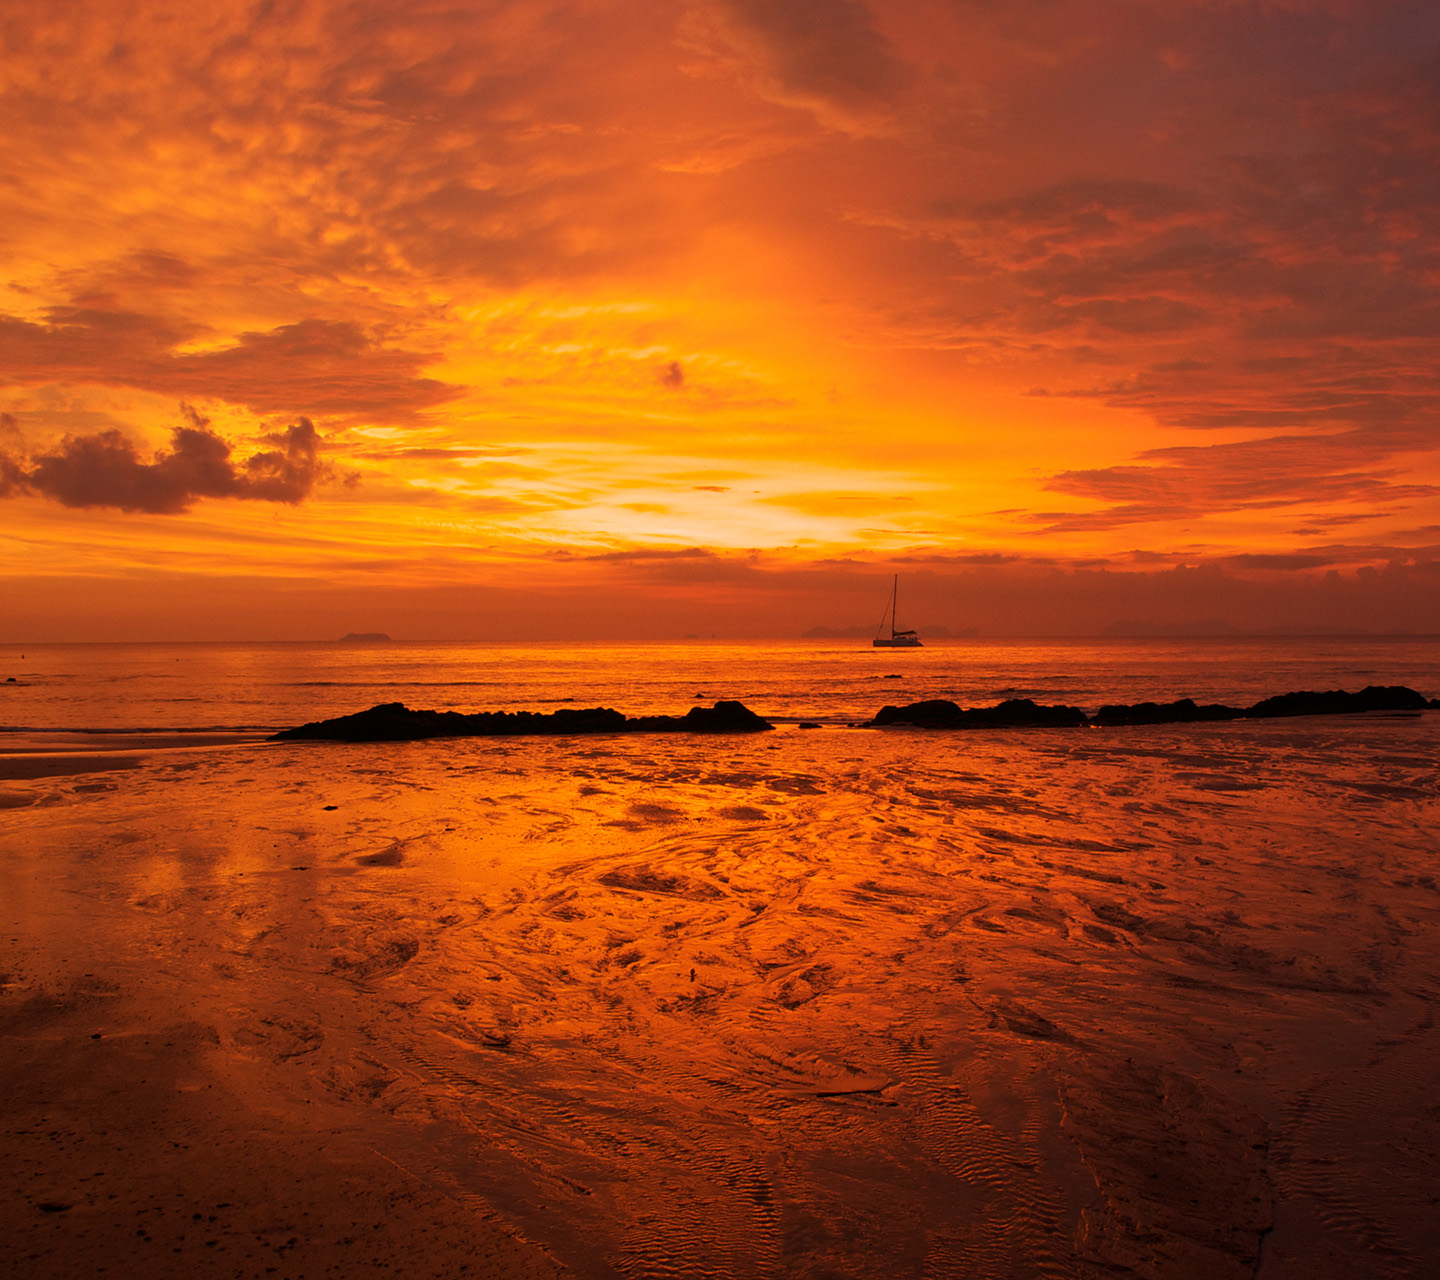 Andaman sunset 1440x1280 Screensaver wallpaper 1440x1280